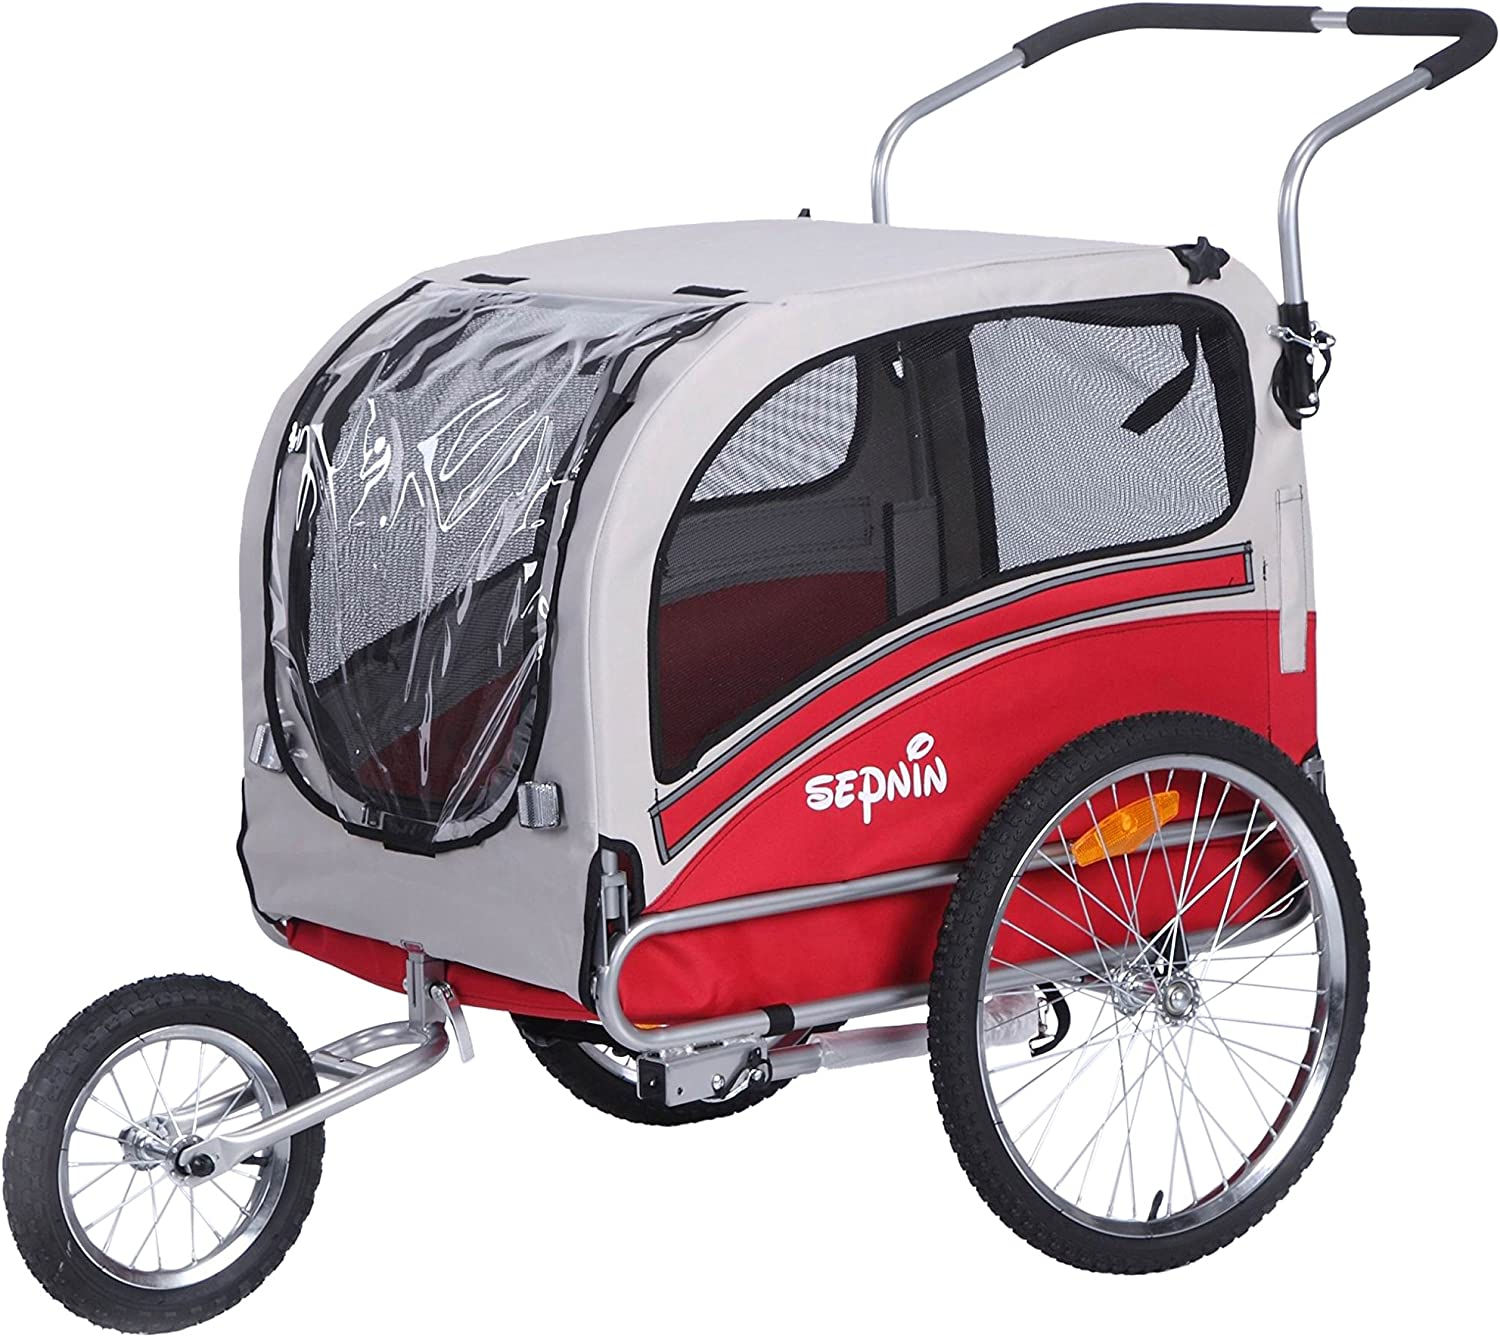 Sepnine Pet Dog Bike Trailer